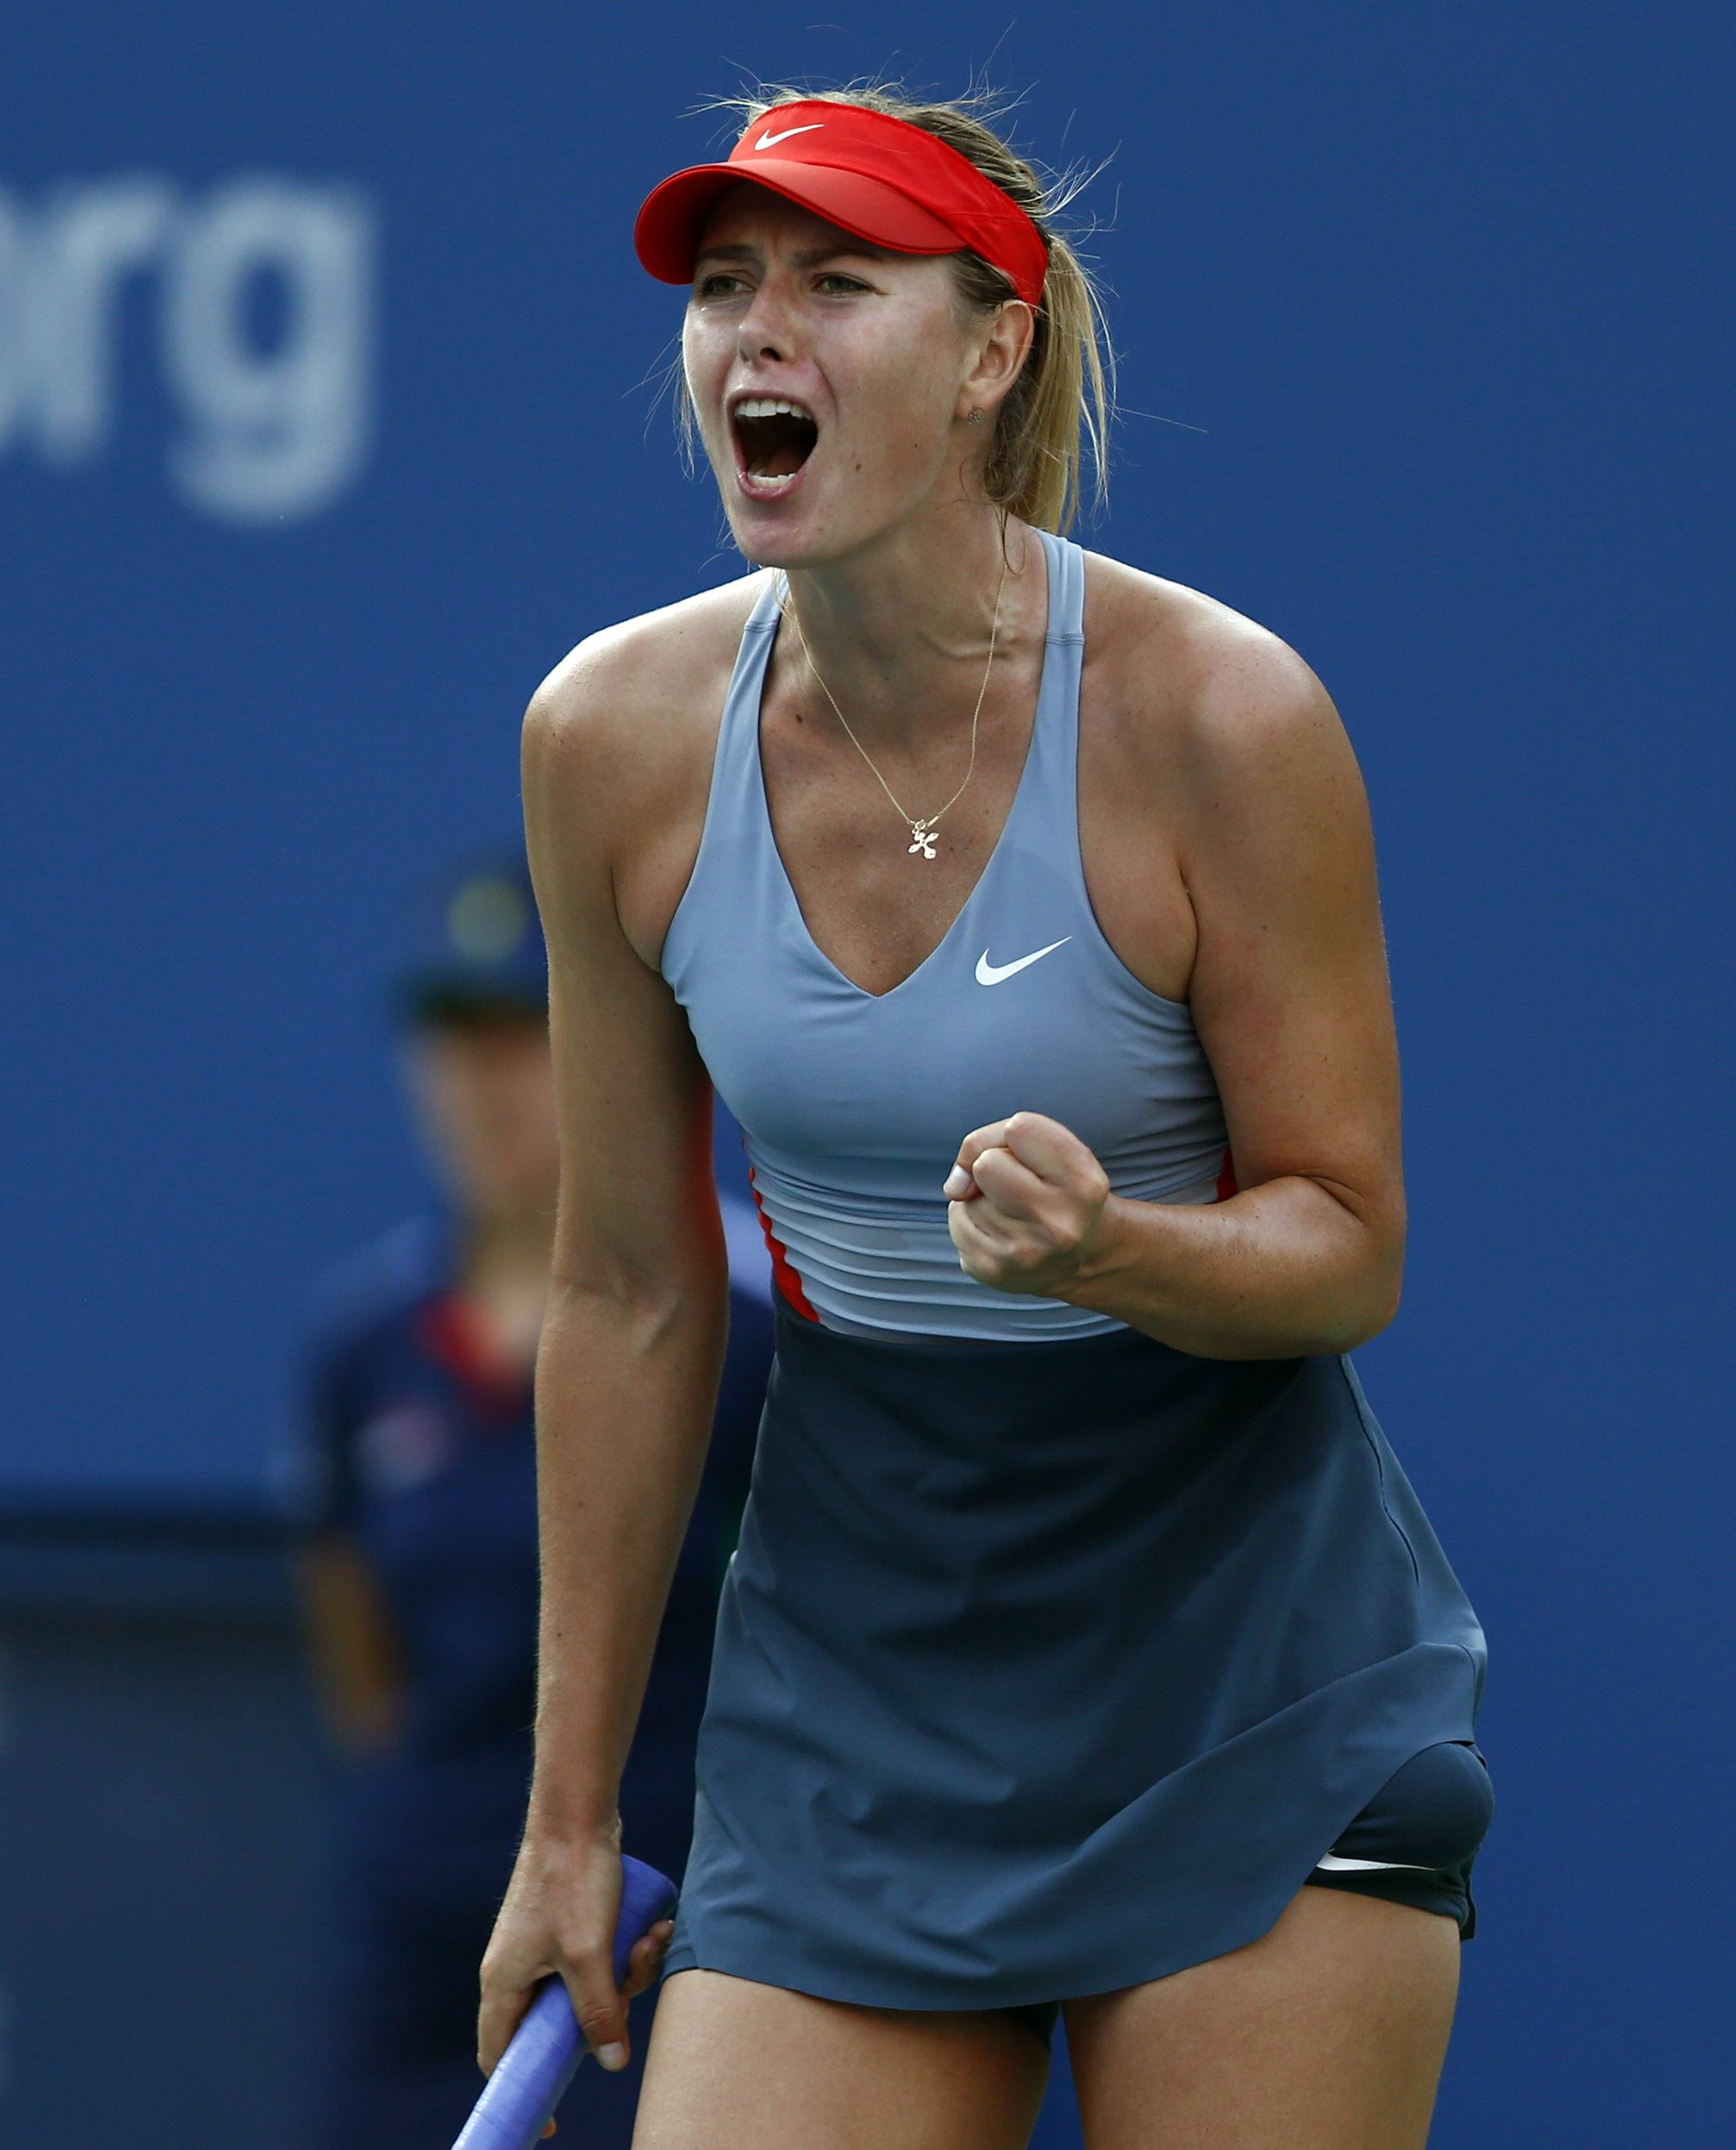 Maria Sharapova, of Russia, reacts after a point against Alexandra Dulgheru, of Romania, during the second round of the 2014 U.S. Open tennis tournament, Wednesday, Aug. 27, 2014, in New York.